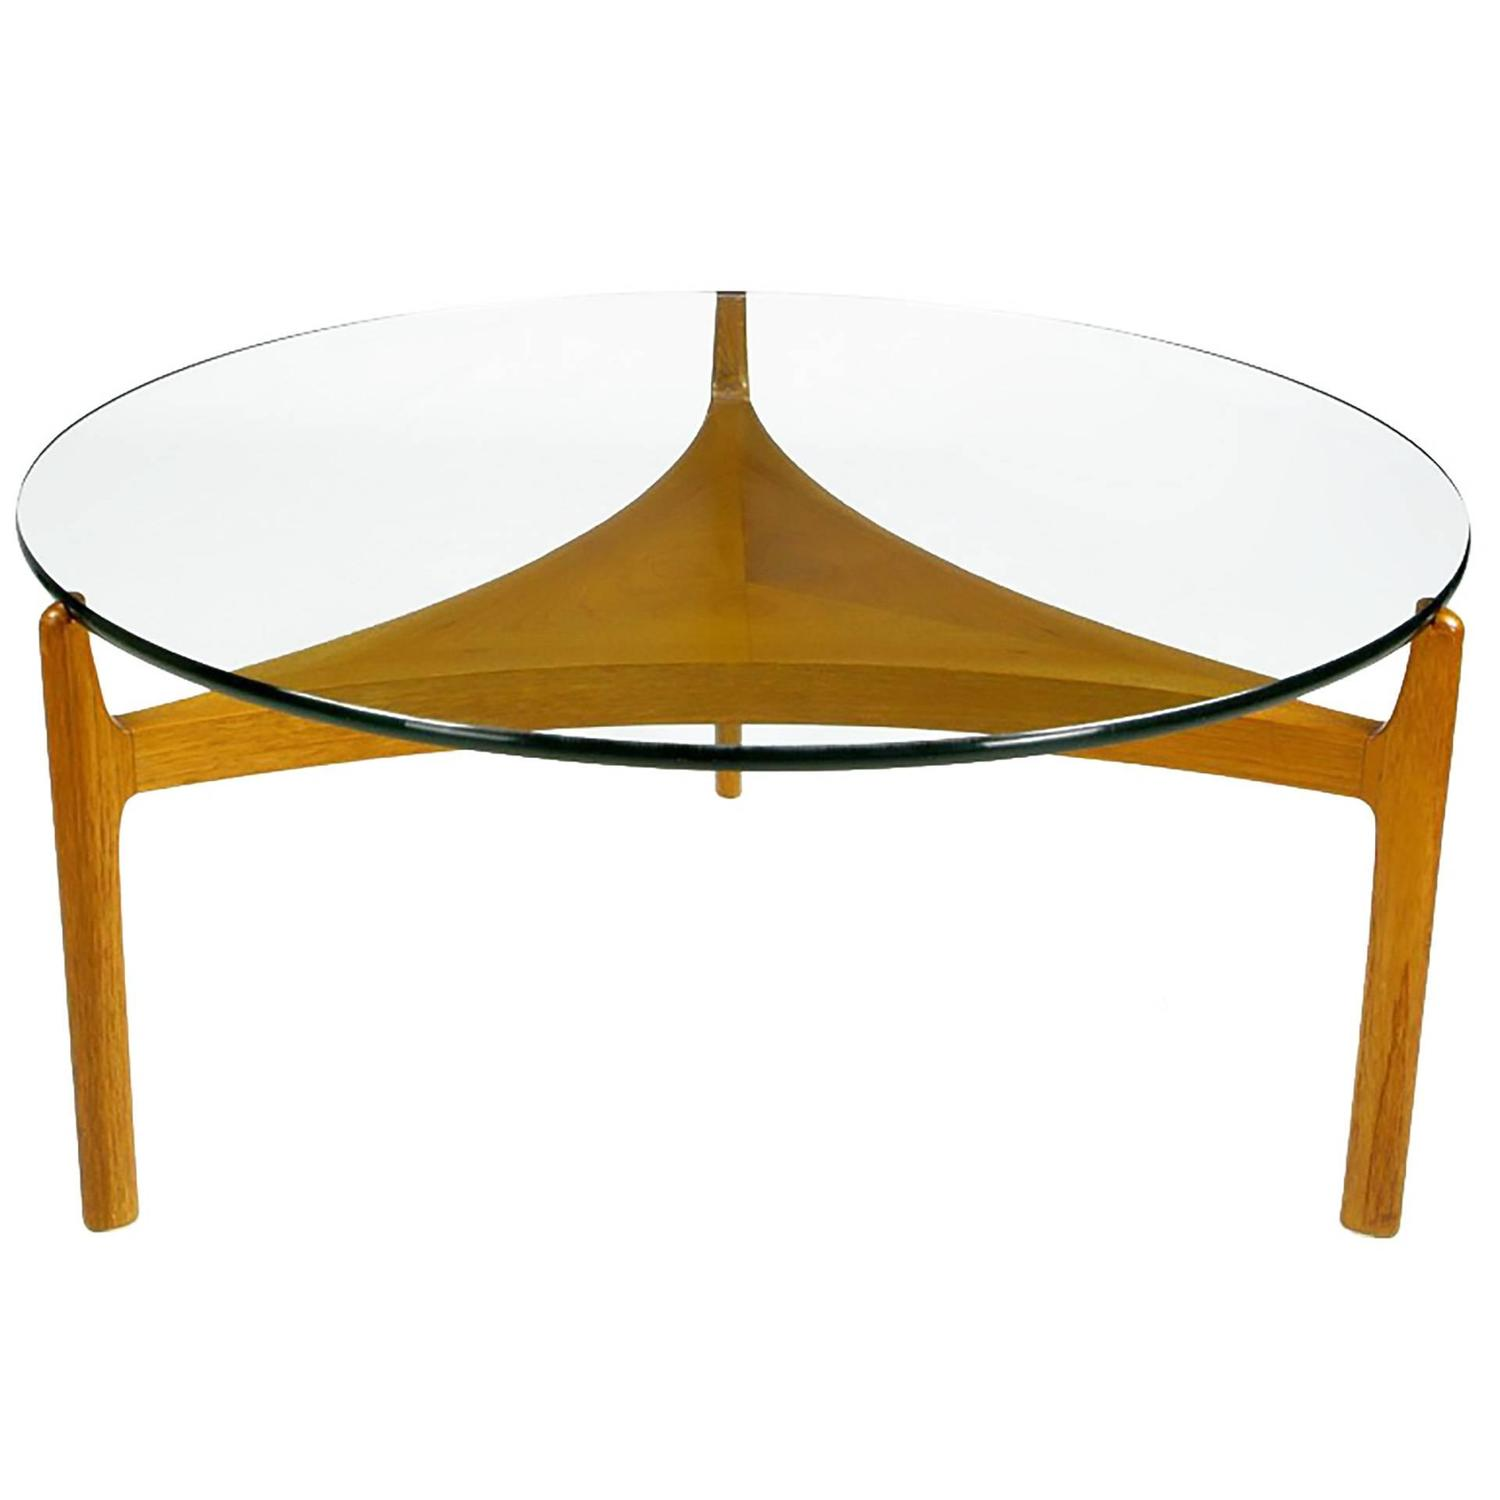 Danish Modern Rosewood and Ebony Glass Coffee Table by Sven